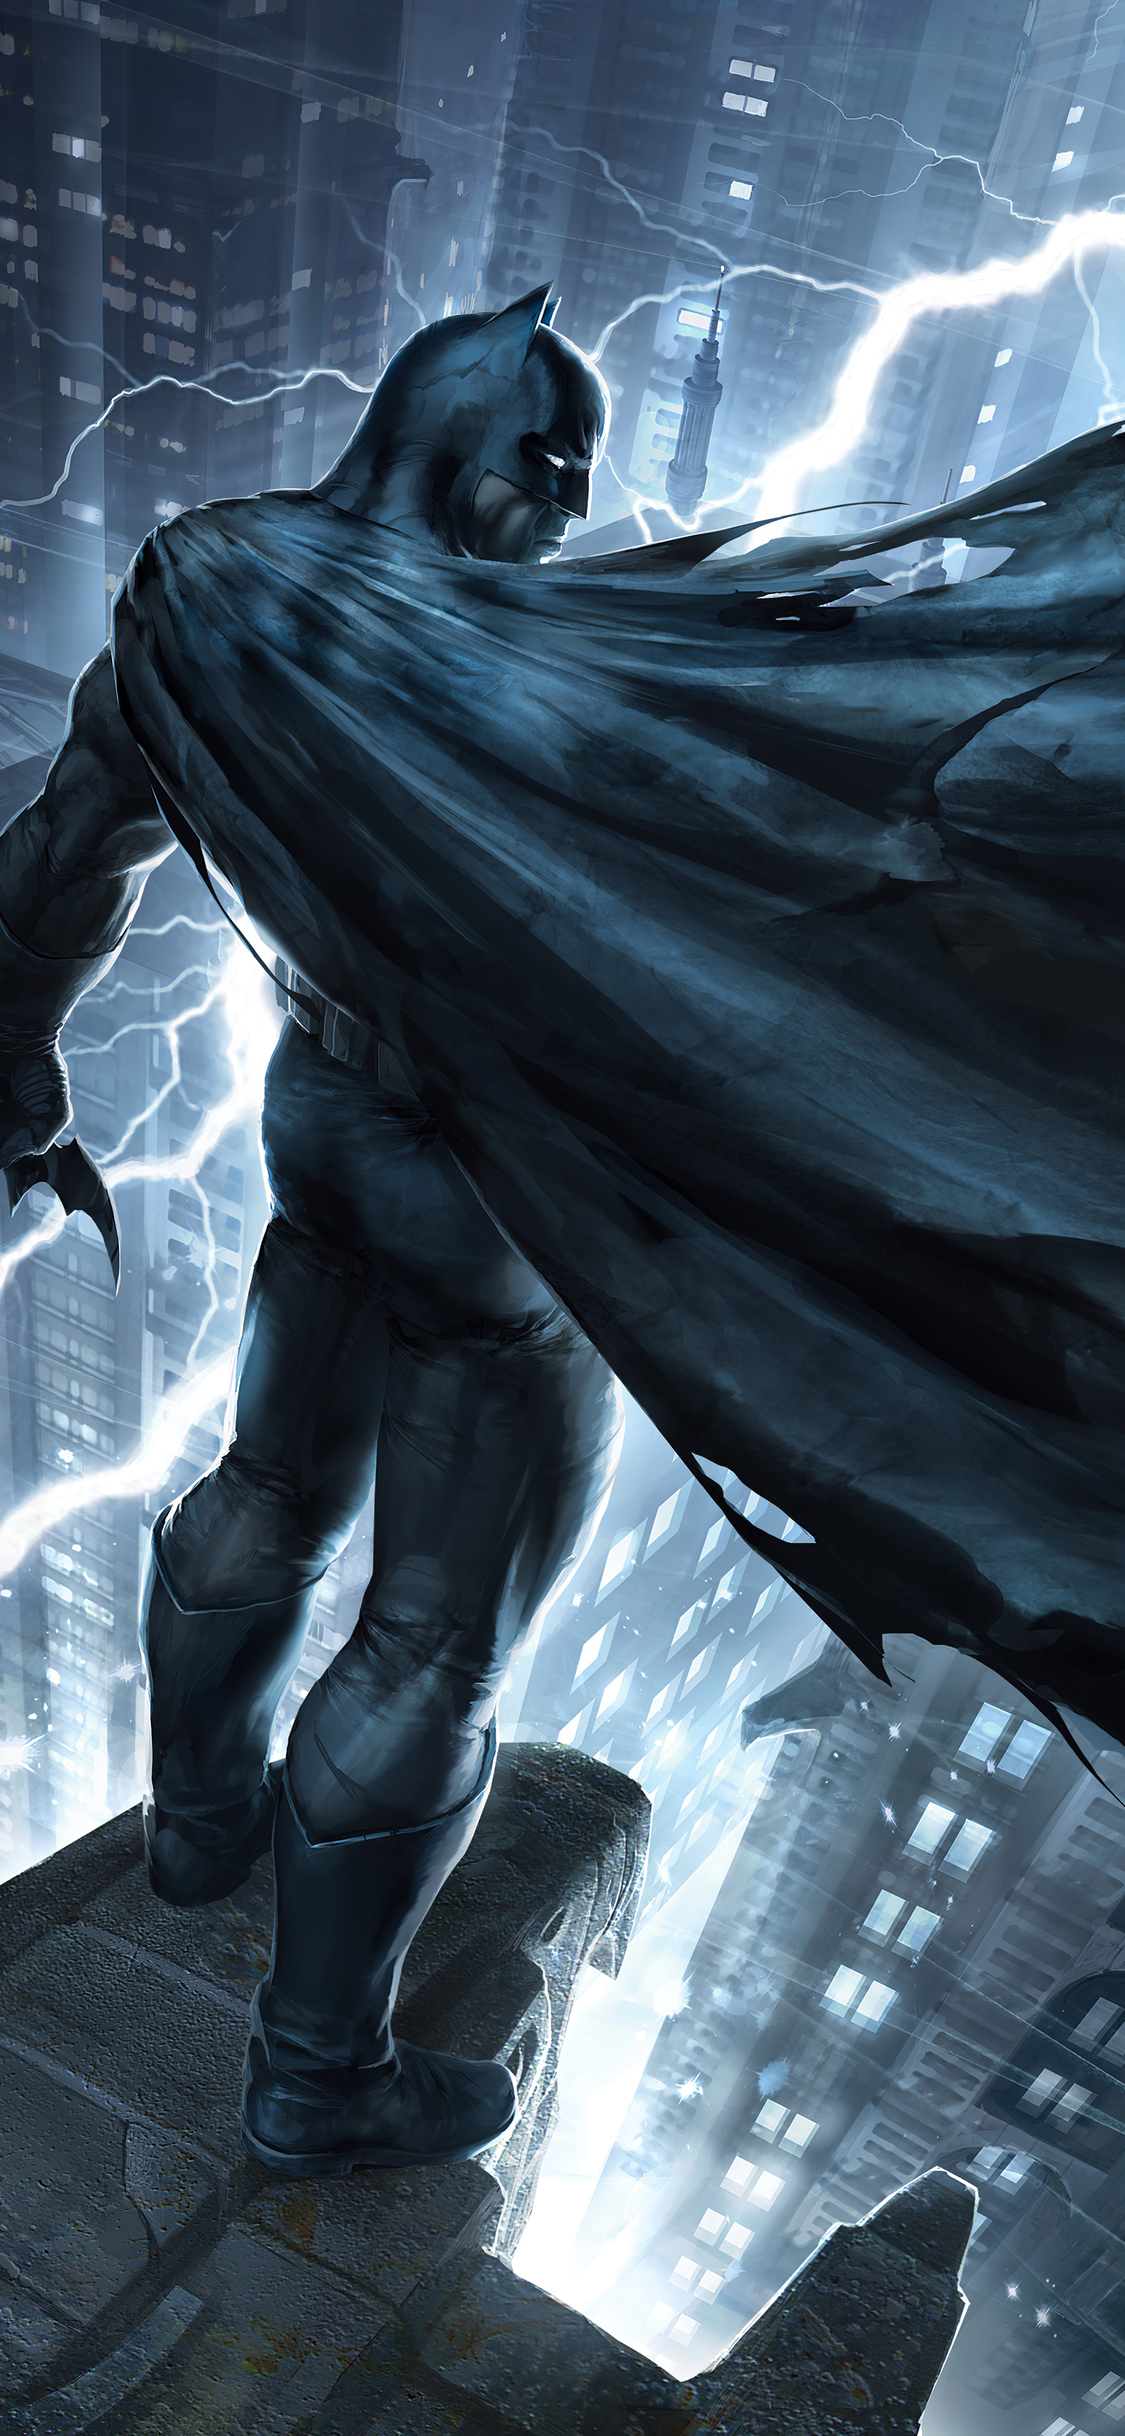 1125x2436 Batman The Dark Knight Cape 4k Iphone Xs Iphone 10 Iphone X Hd 4k Wallpapers Images Backgrounds Photos And Pictures